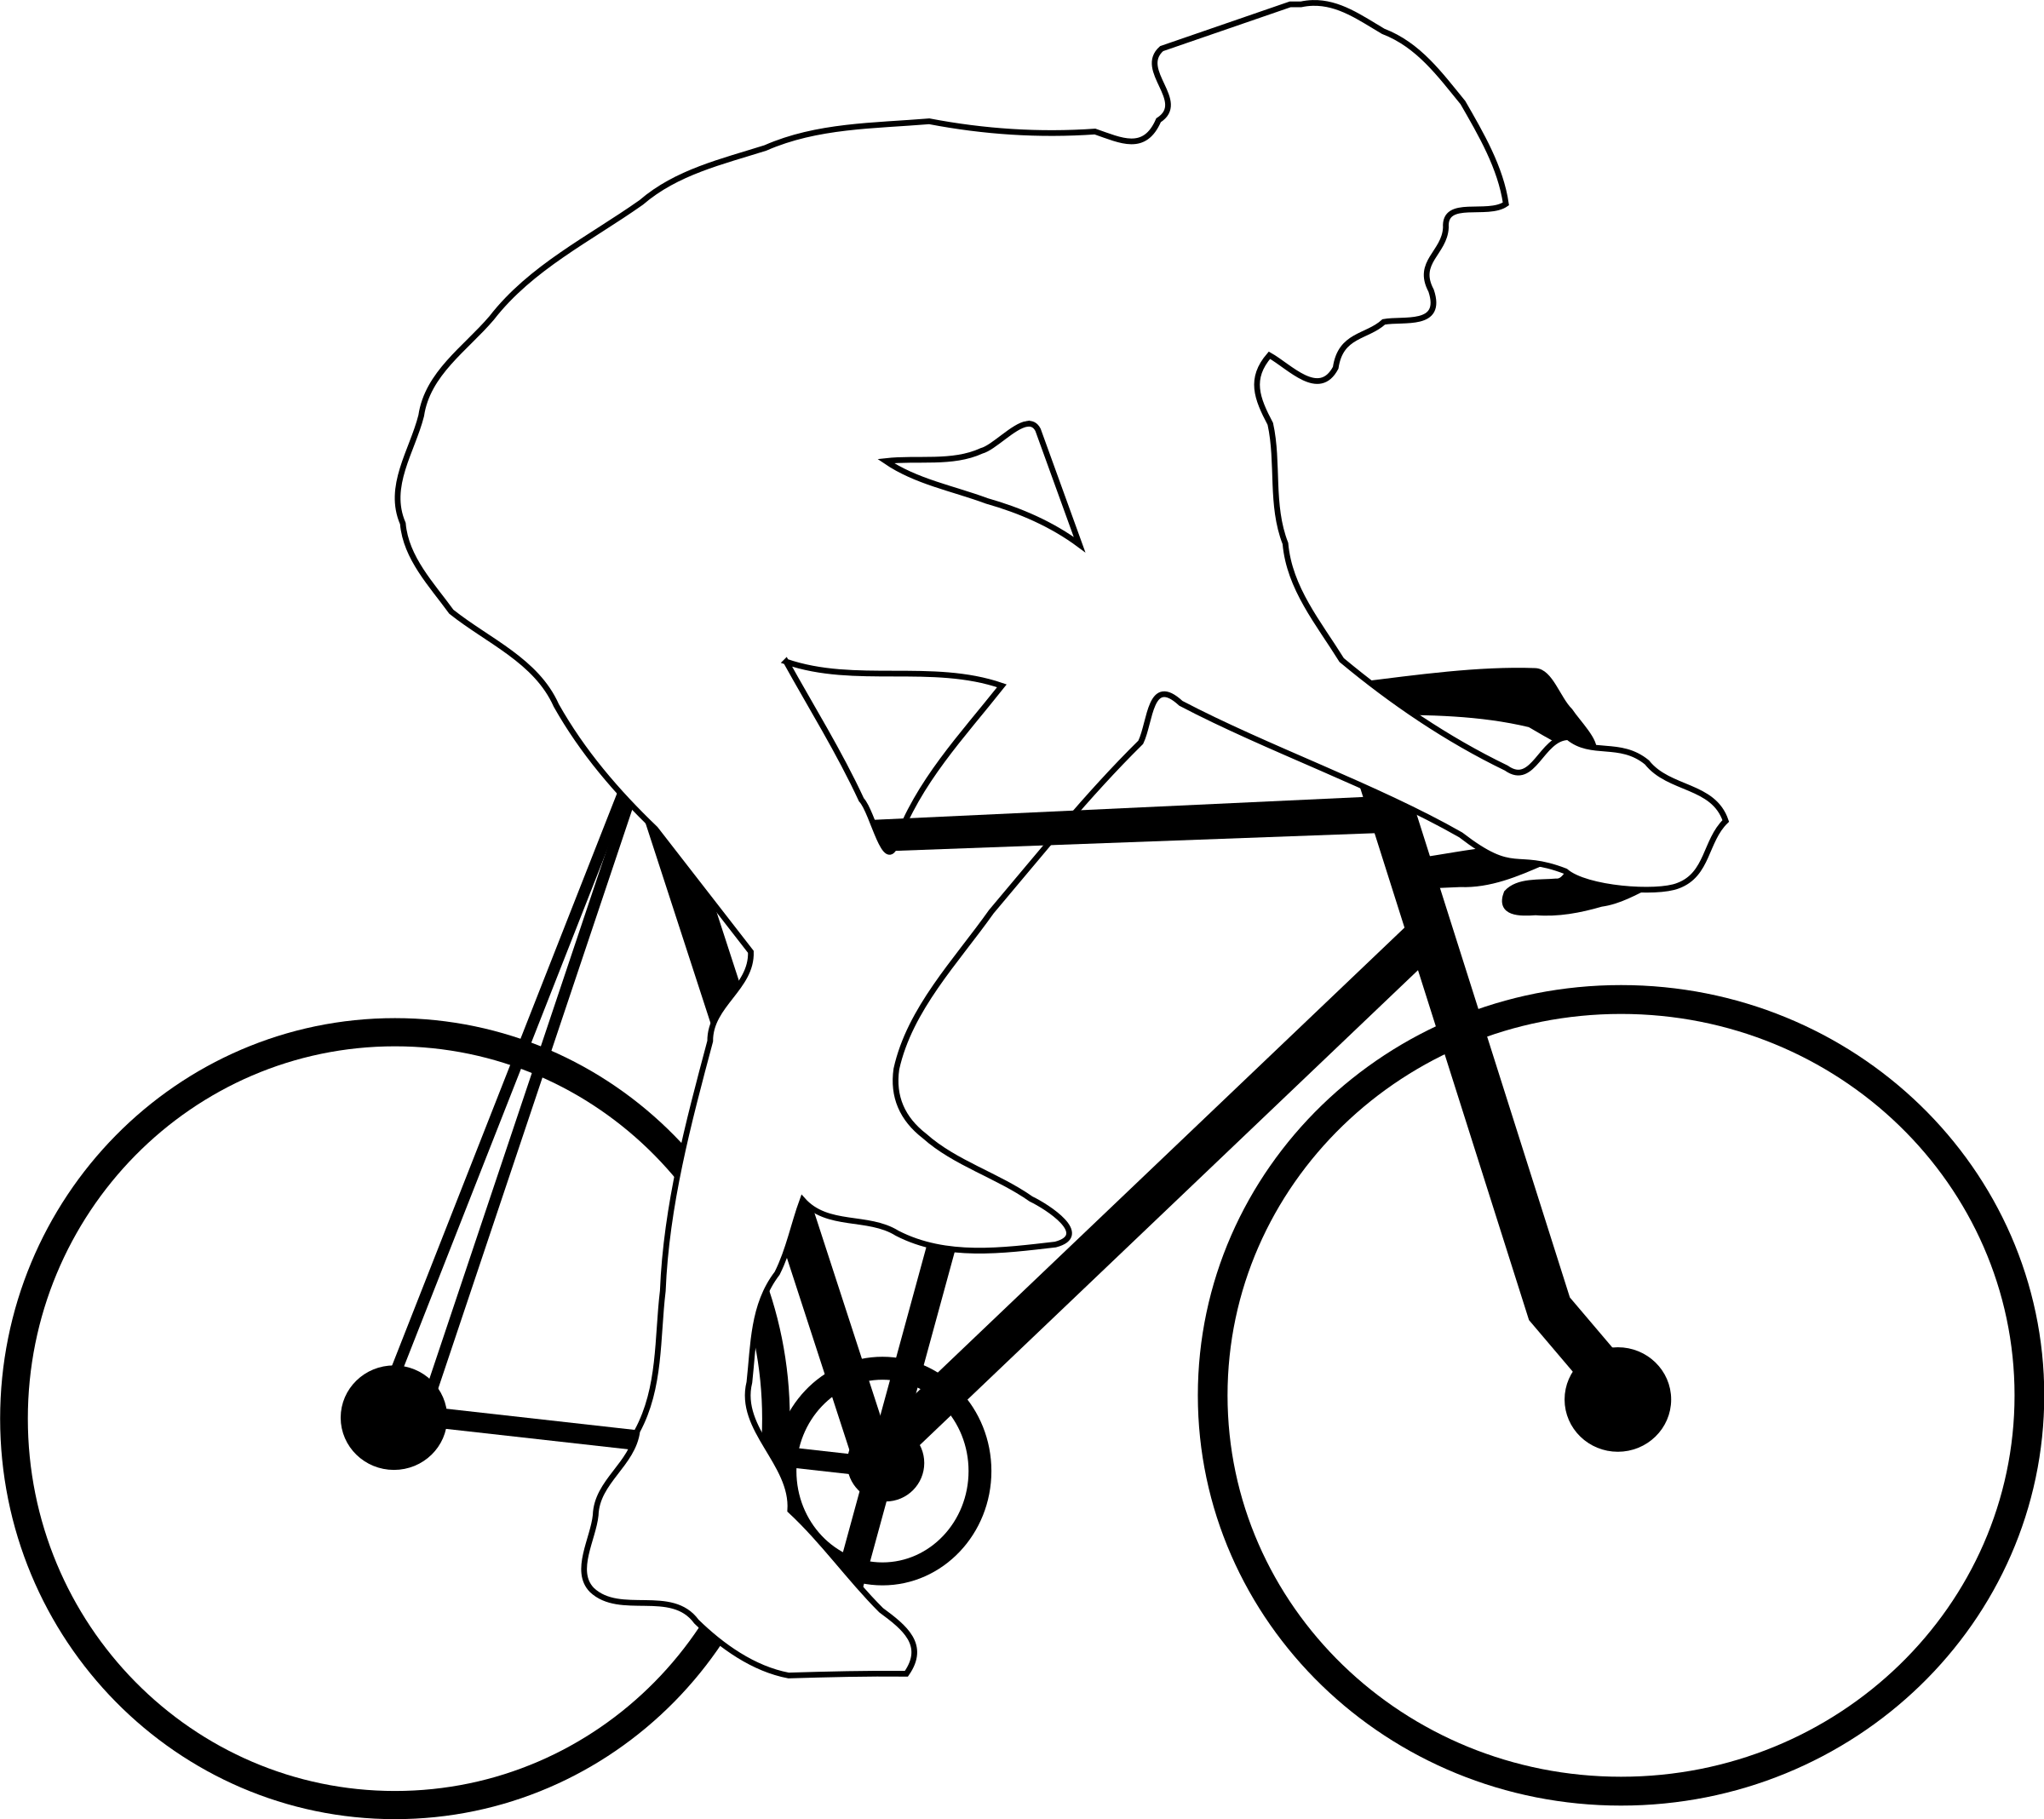 Cyclist silhouette big image. Cycling clipart outline